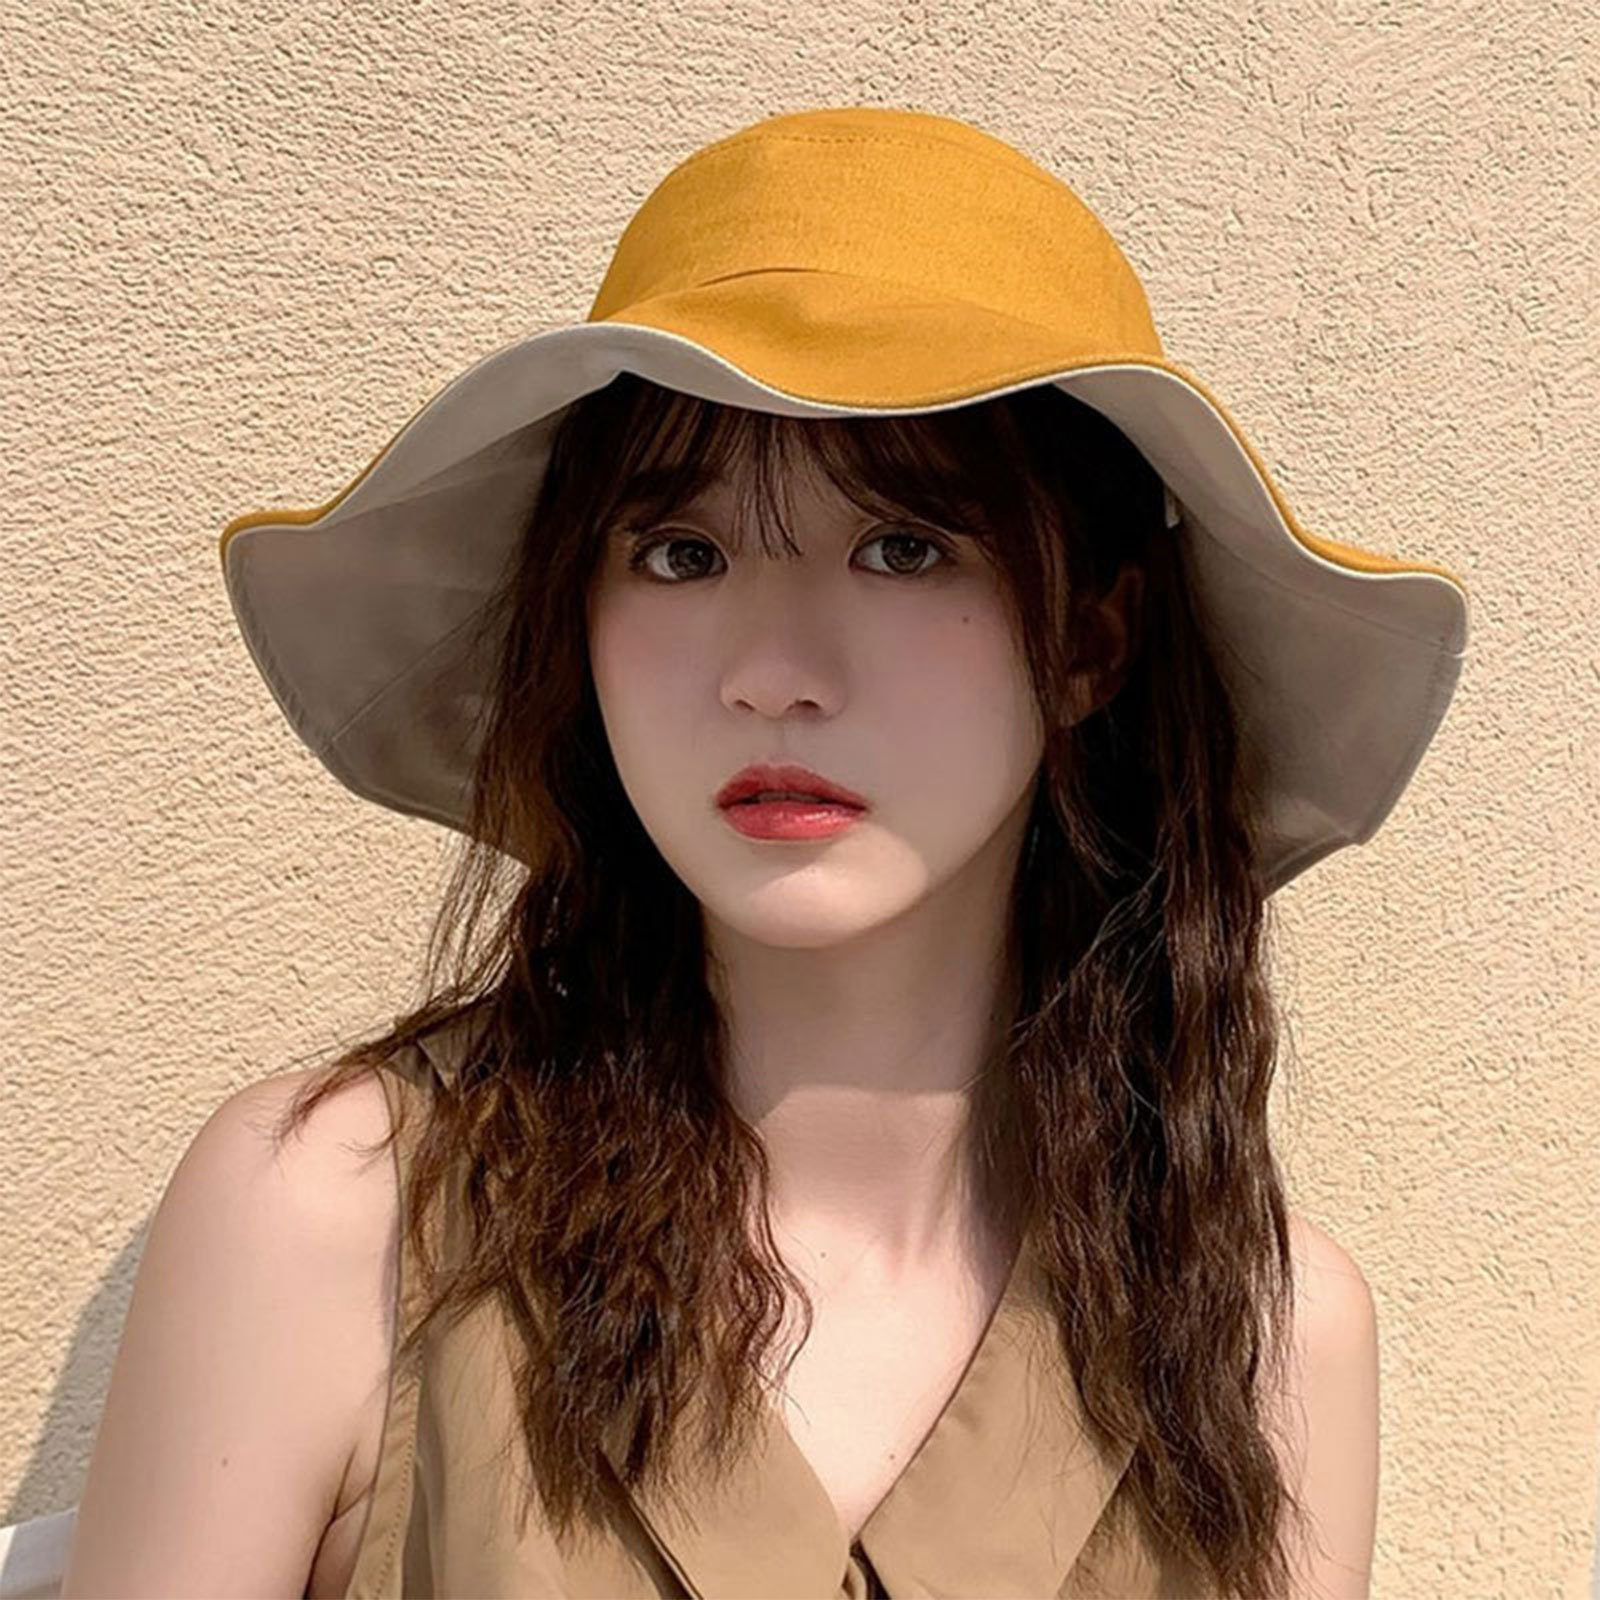 New Ladies Multicolor Double-Sided Wide-Brimmed Sun Hat Summer UV Protection Floppy Disk Double-Sided Beach Bucket Hat